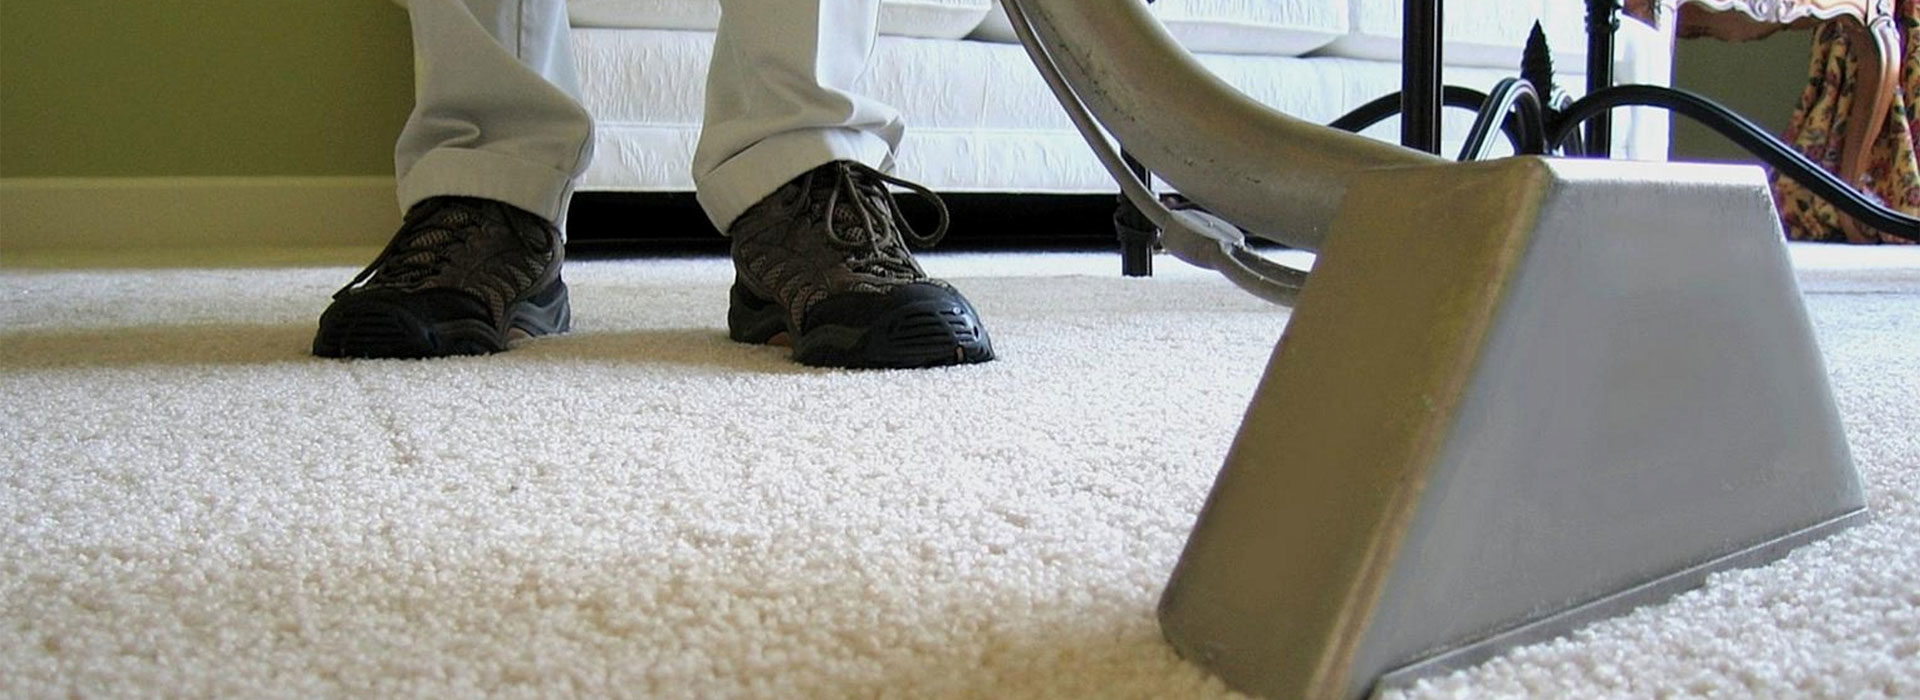 Specialists in Commercial & Residential Steam Cleaning